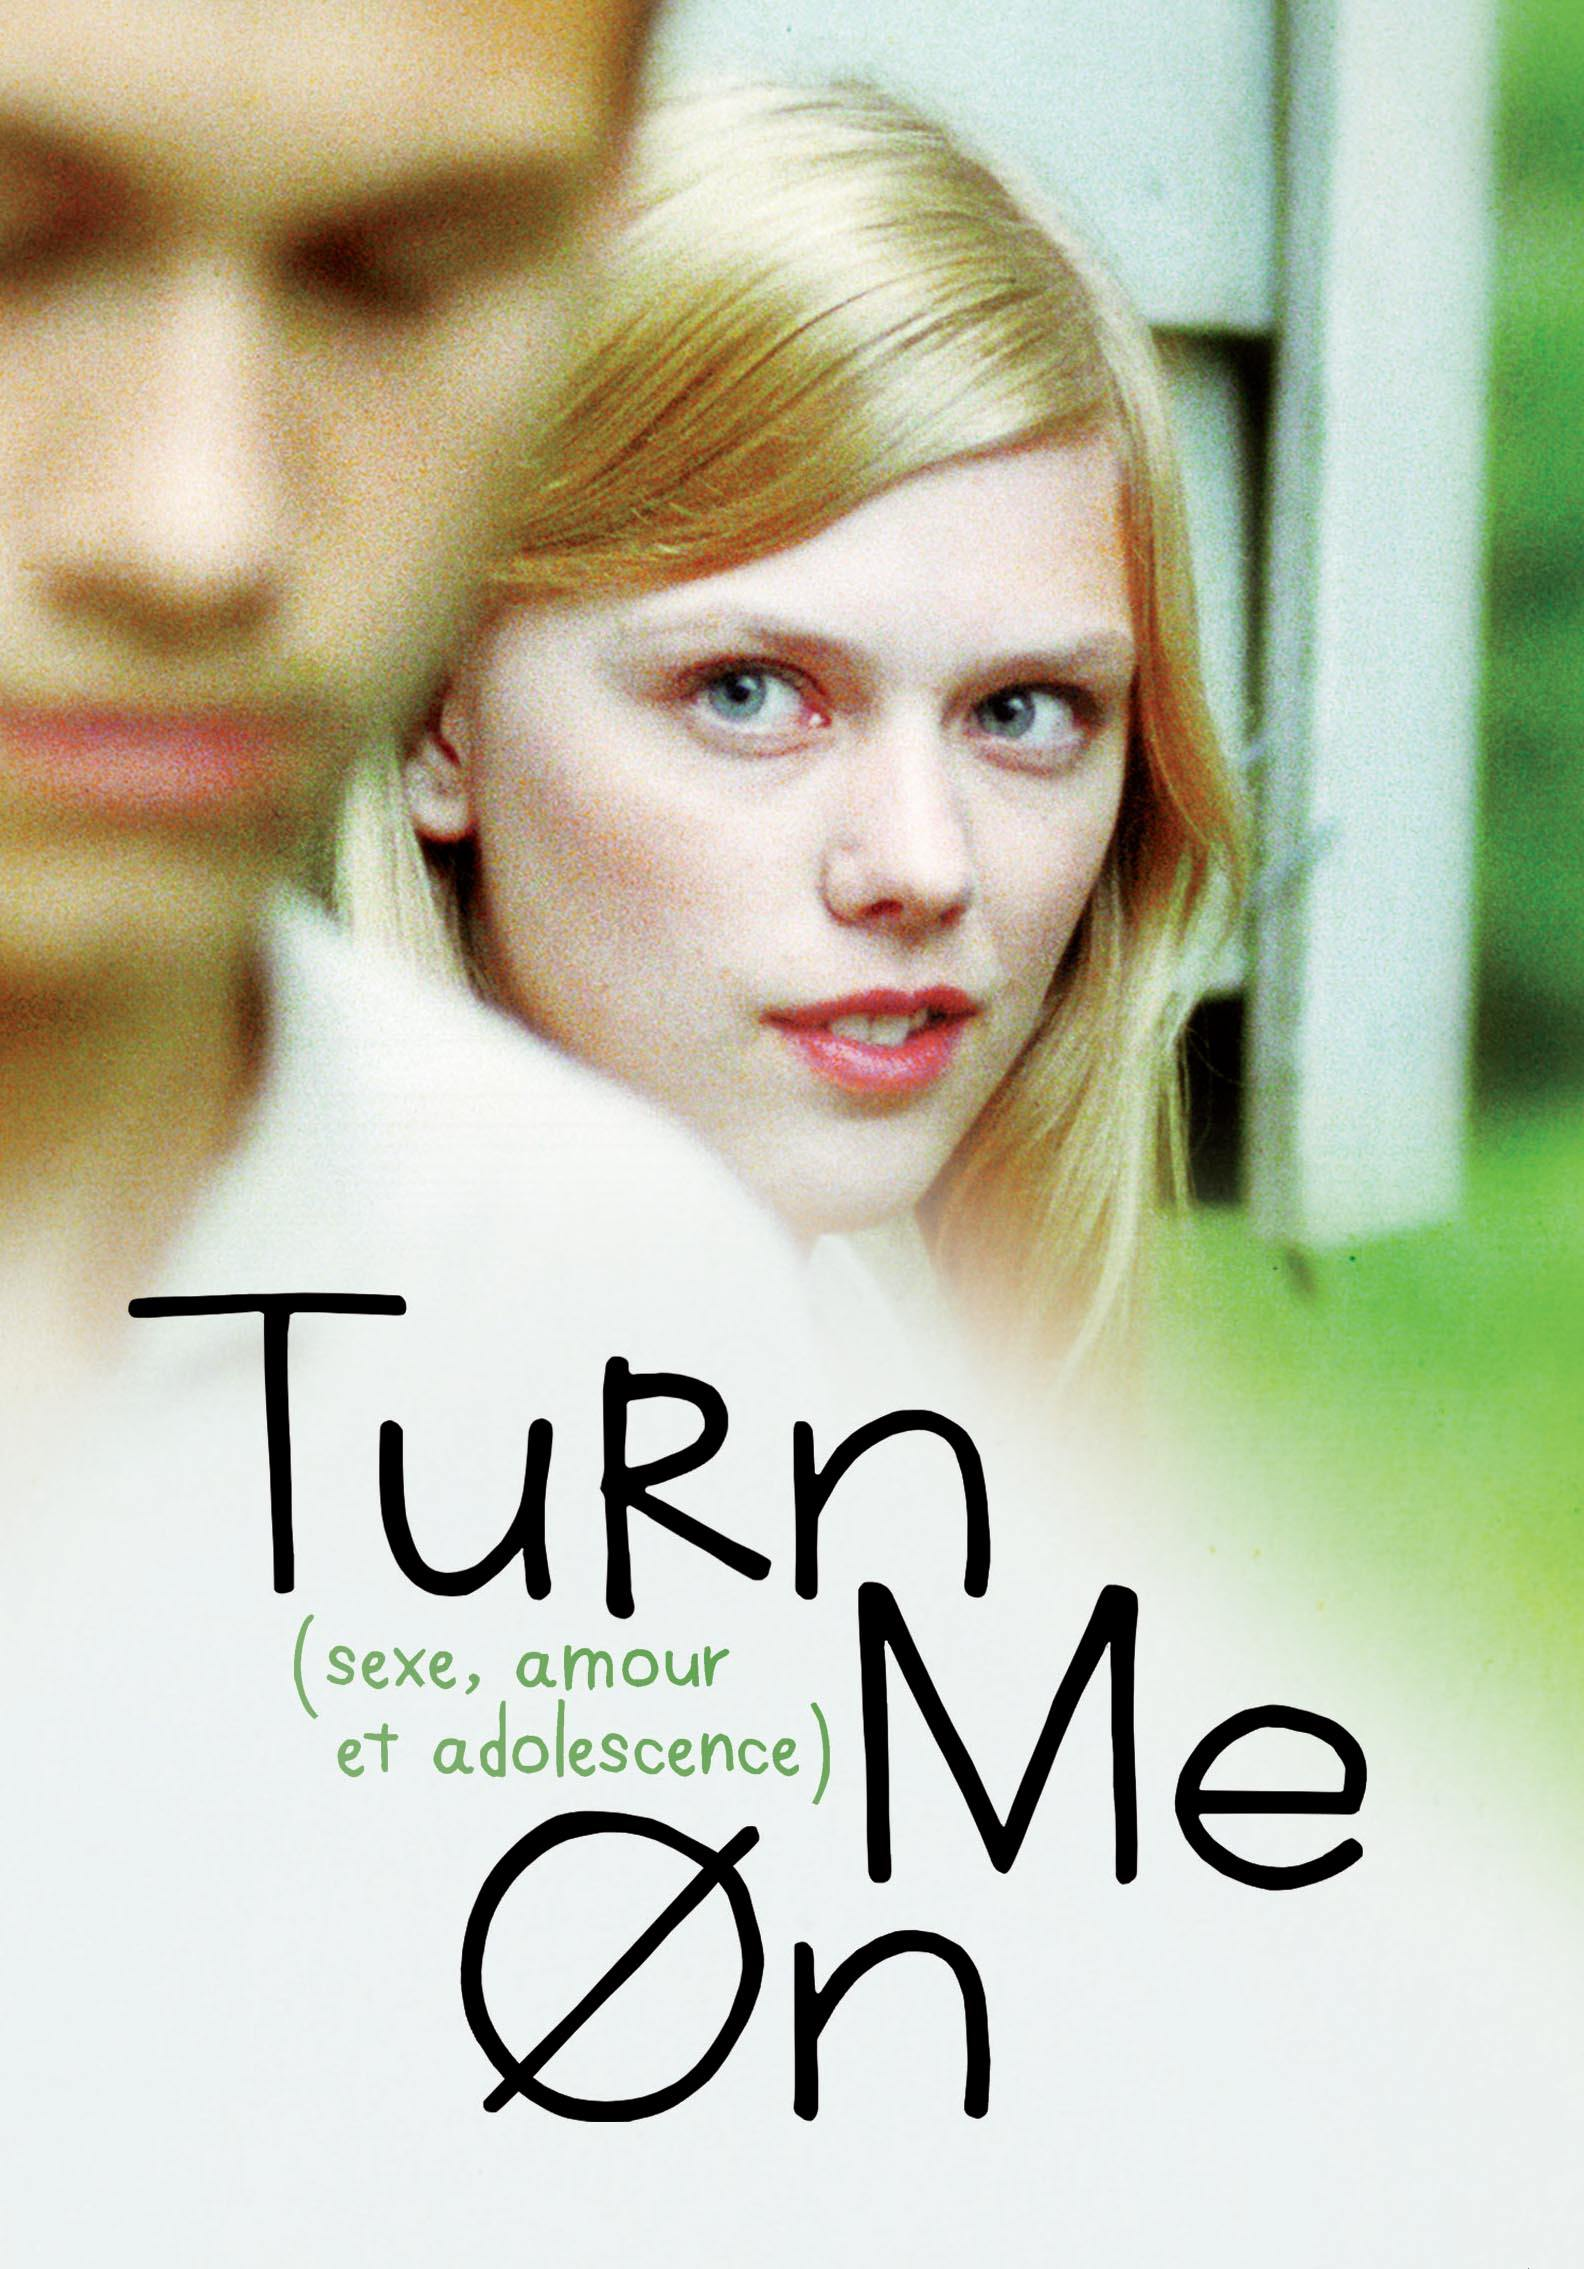 Turn me on - dvd